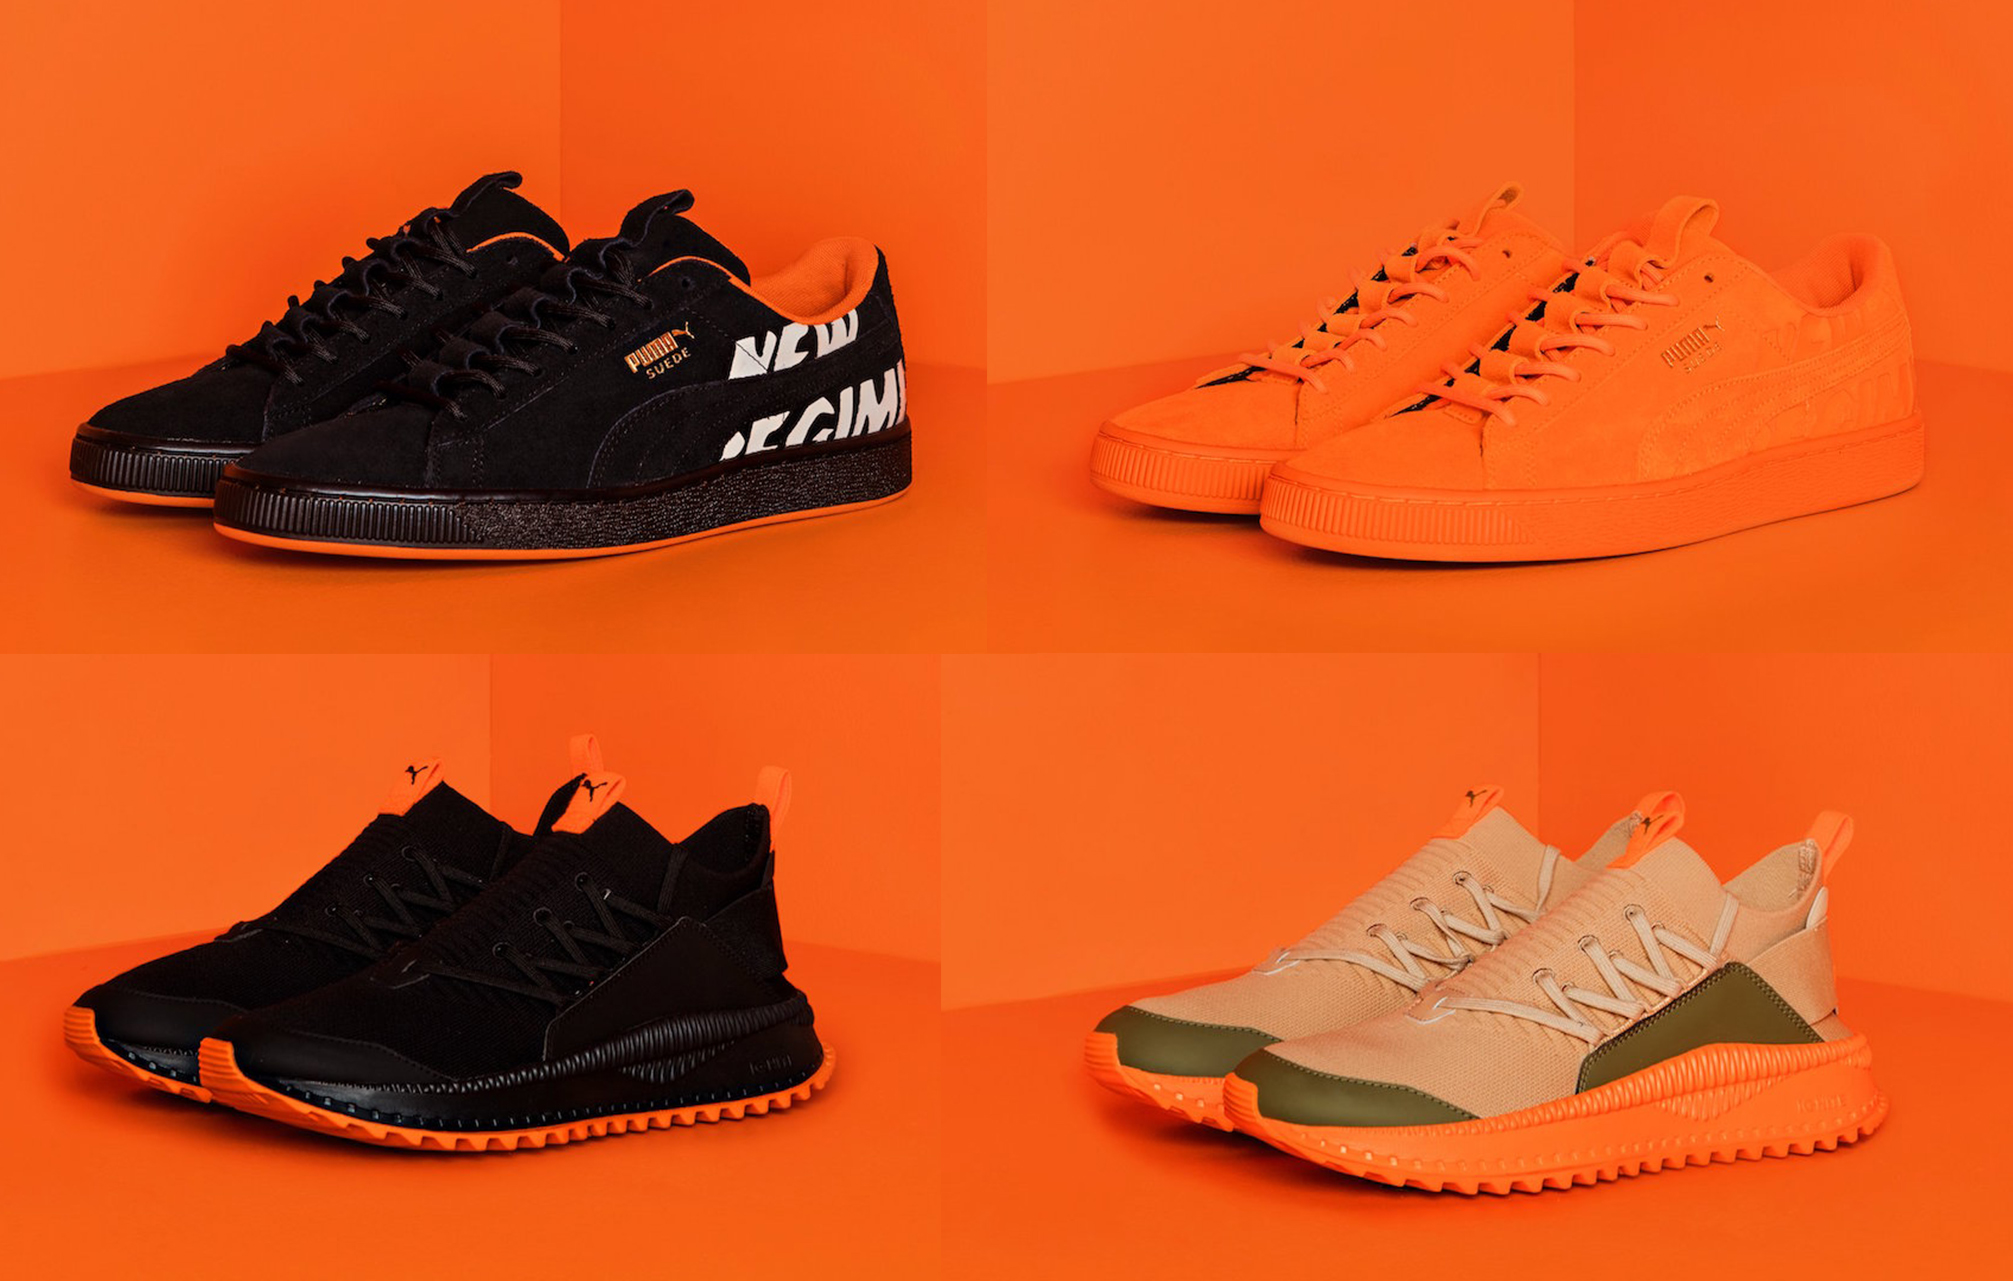 e0ef4574175 PUMA links up with Atelier New Regime for a motorsport-inspired ...